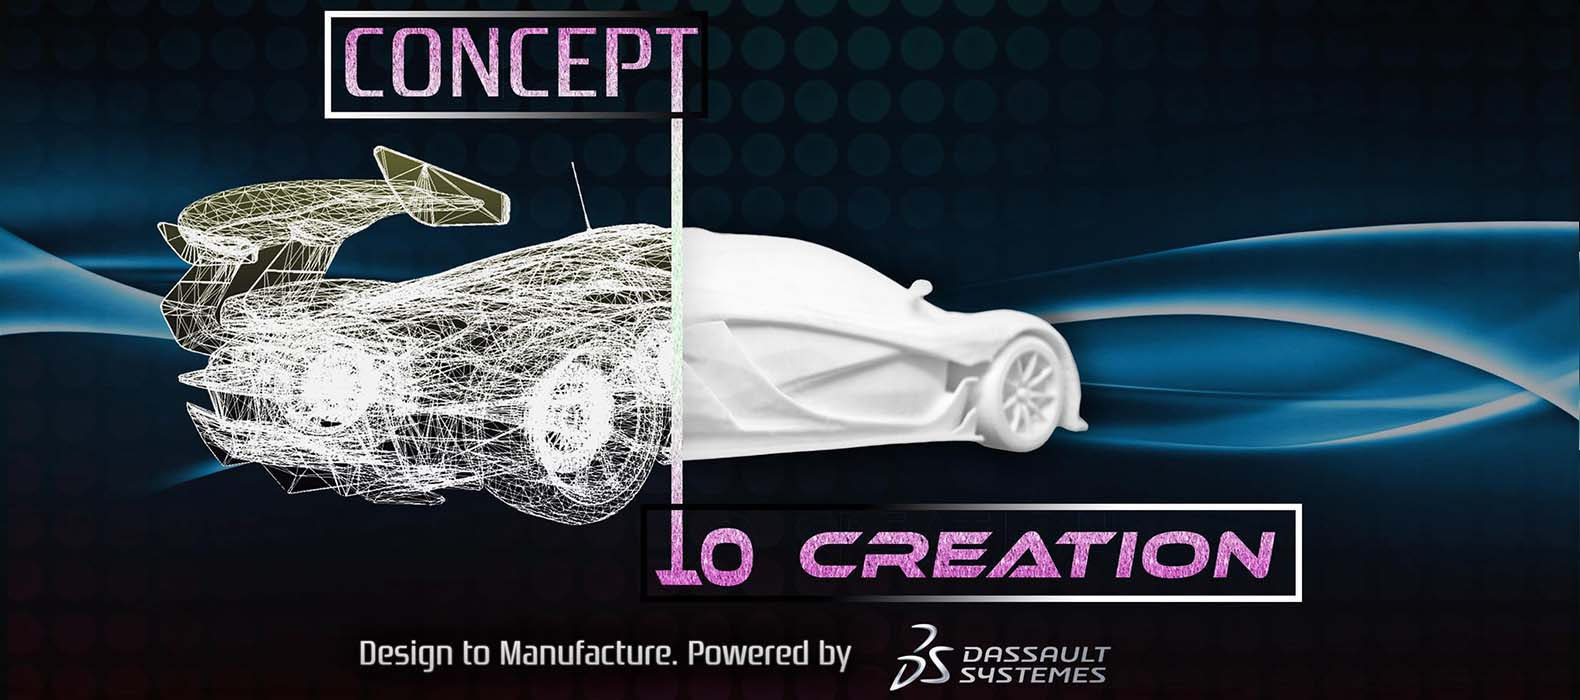 3dprinting-automotive-application-3dprintedCAR-3dautoparts-automobile